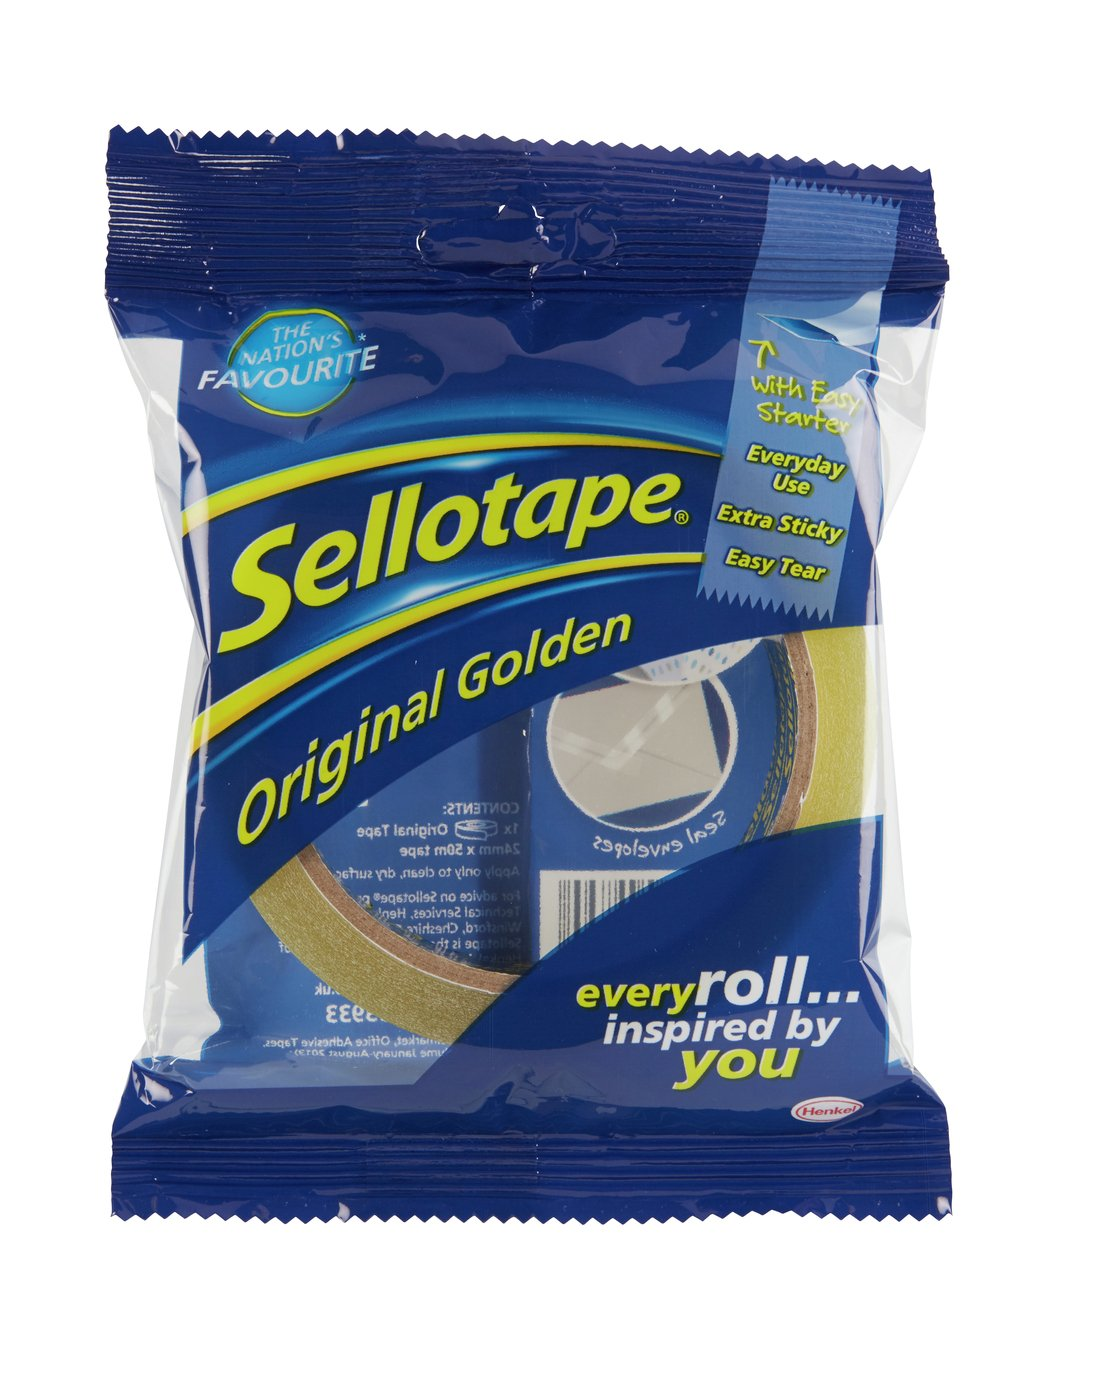 Sellotape Original Golden 24mm x 50m